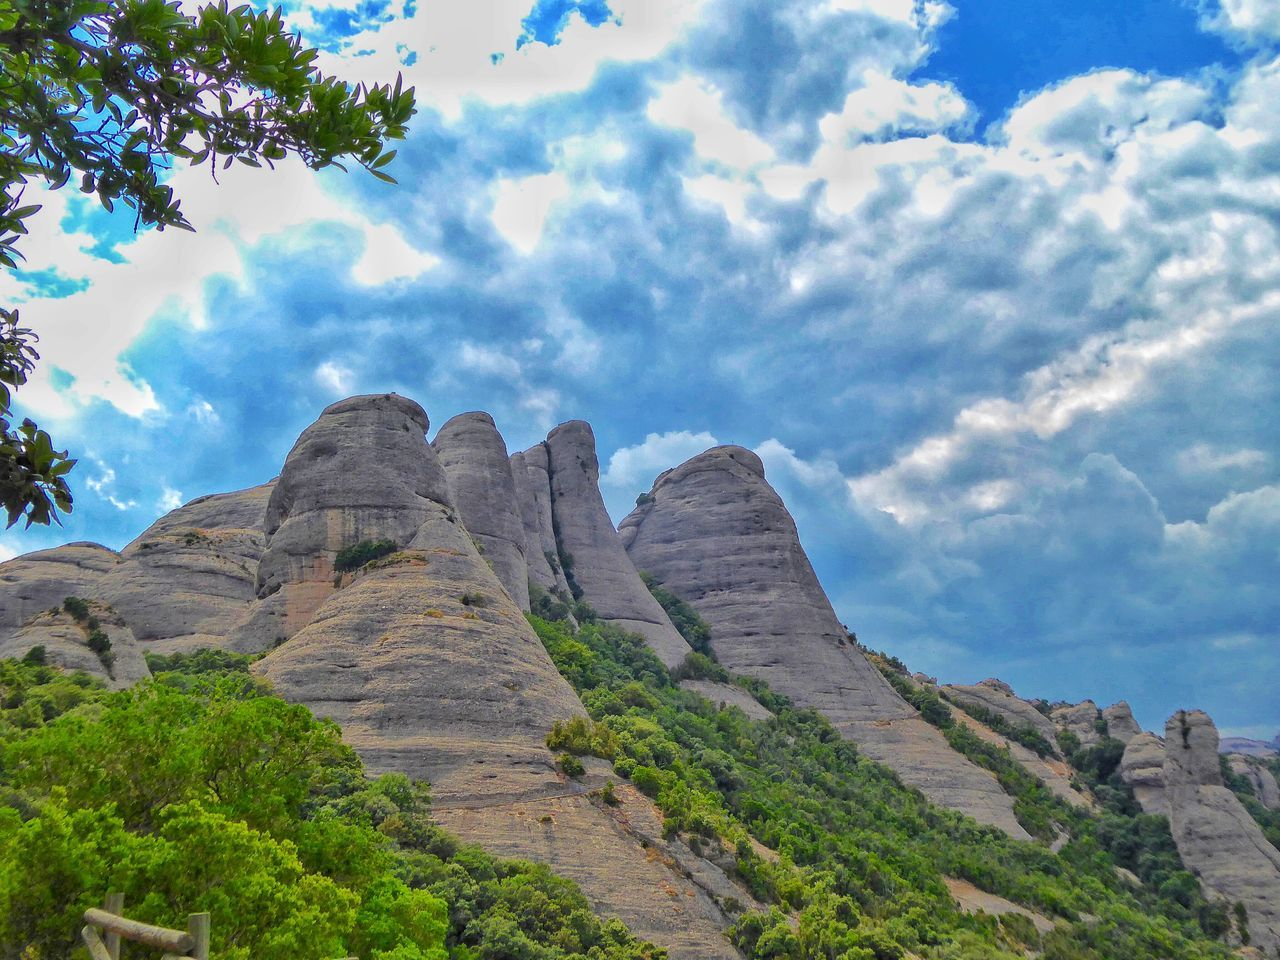 Montserrat SPAIN Spain♥ Catalunya Mountains Mountain Range Mountain Mountain View Mountains And Sky Mountain_collection Mountainscalling Landscape Landscape_Collection Landscape_photography Rock Formation Rockformation Strange Rock Formations Strange Rockformations